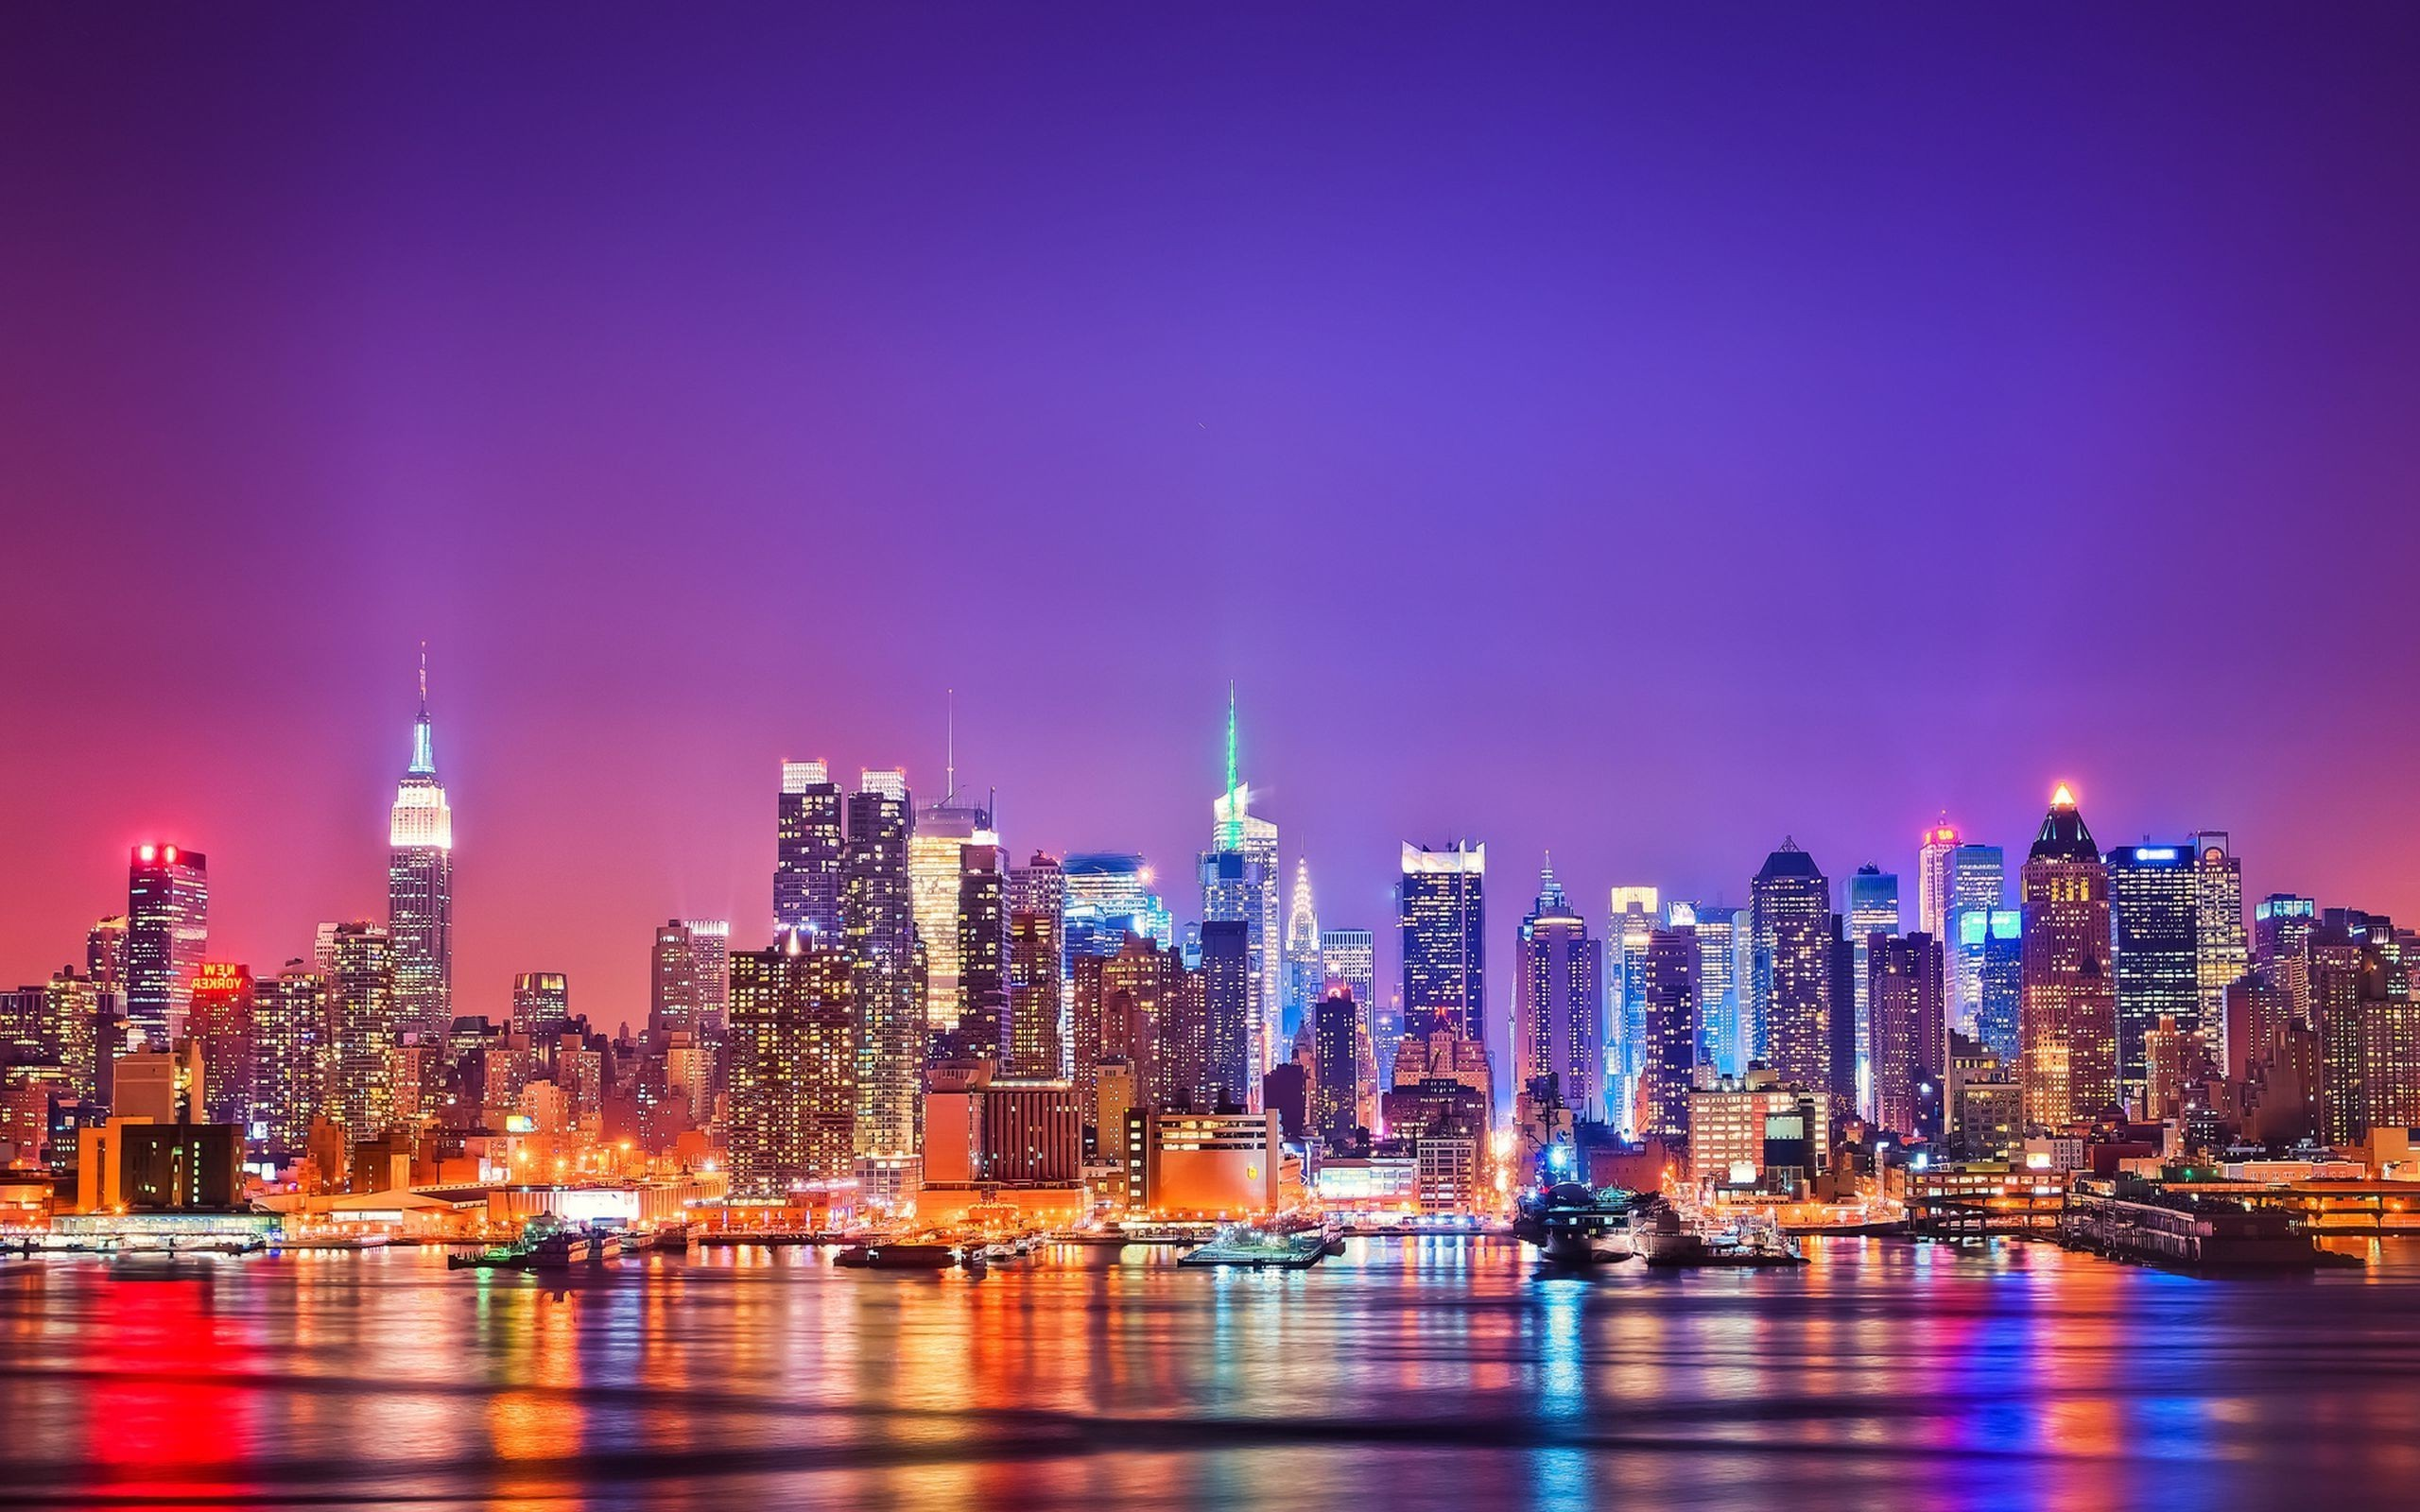 wallpaper.wiki-Picture-of-City-At-Night-PIC-